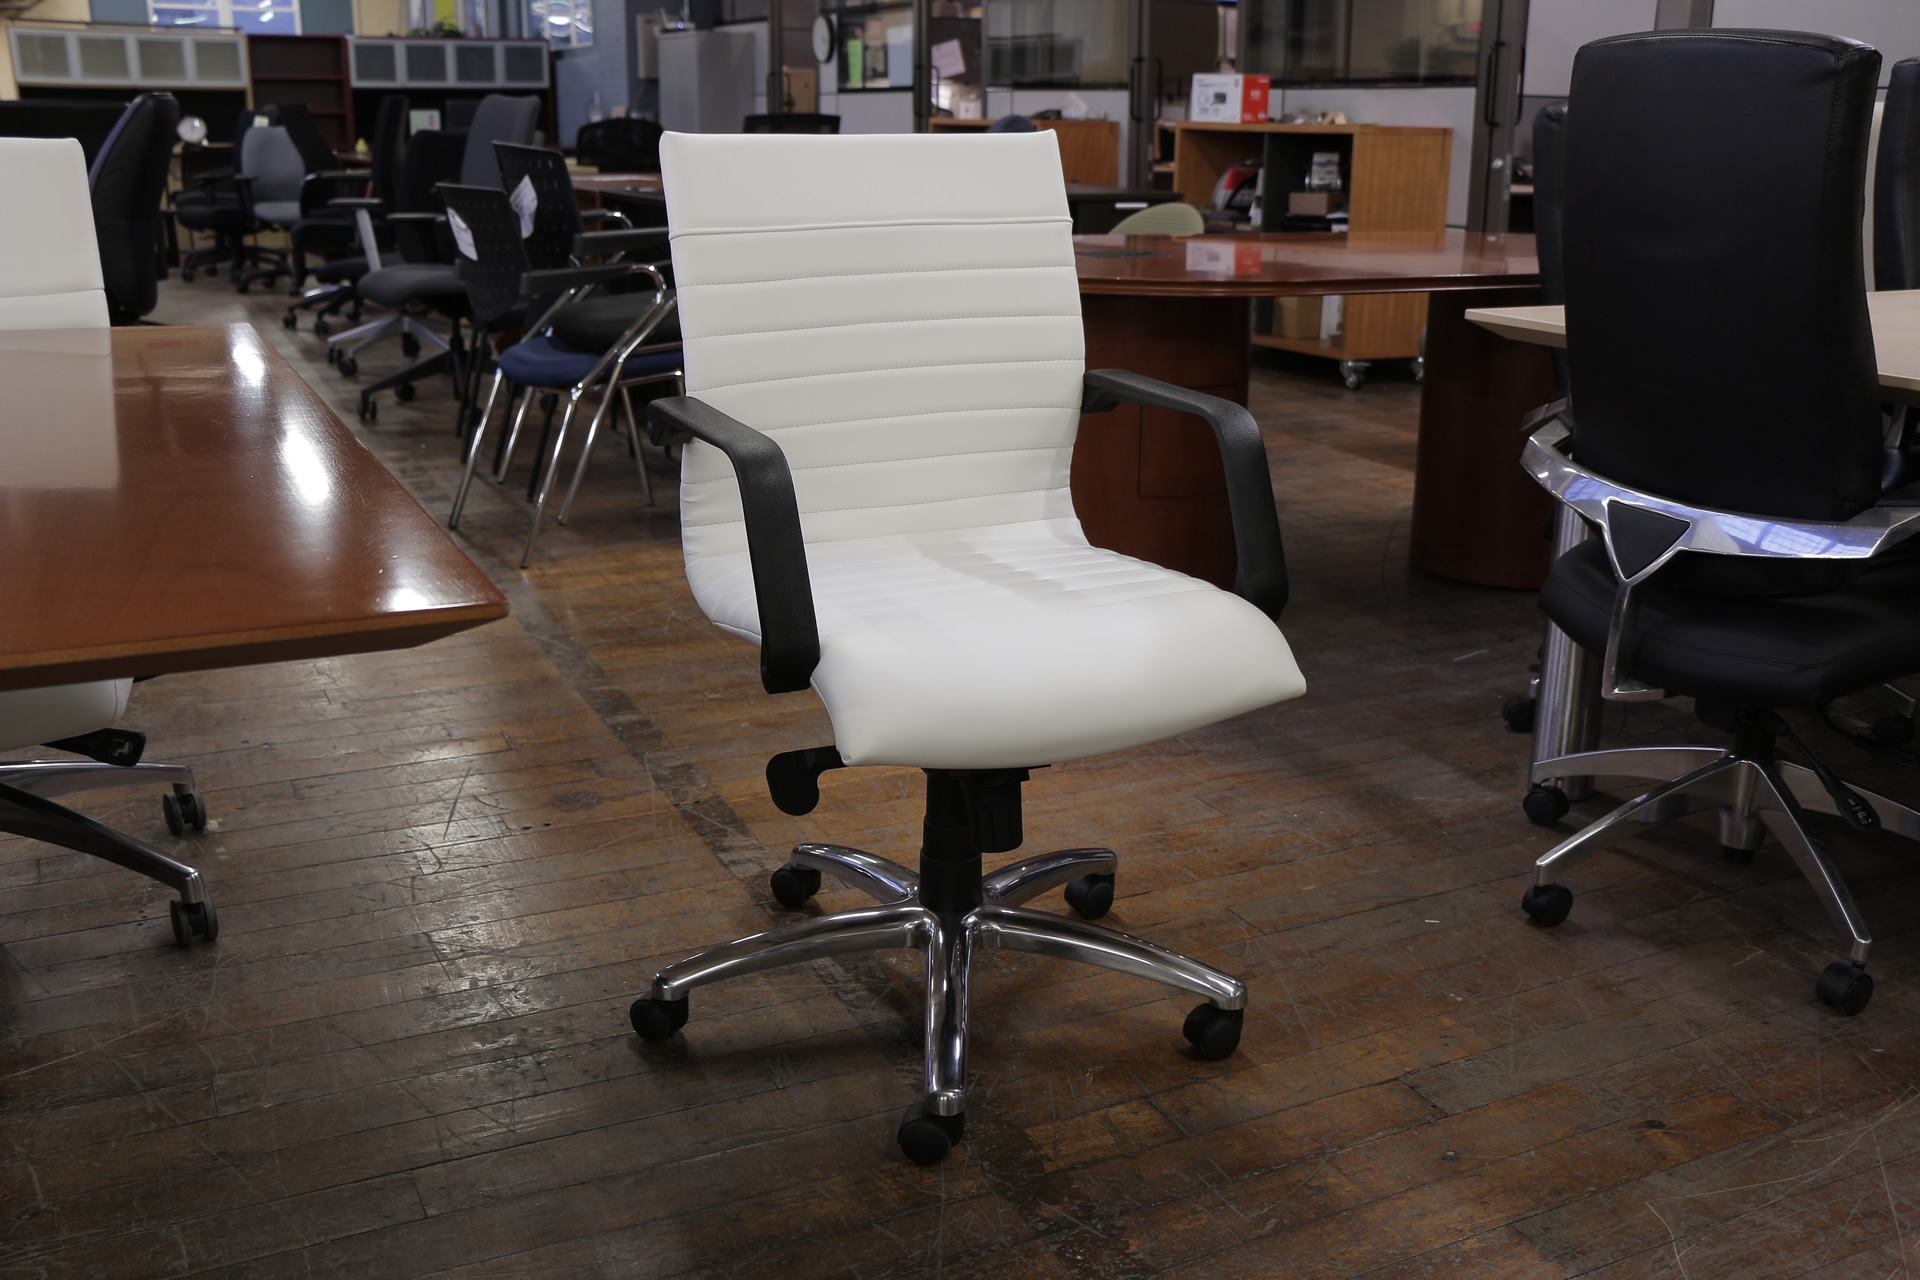 peartreeofficefurniture_peartreeofficefurniture_peartreeofficefurniture_img_9577.jpg